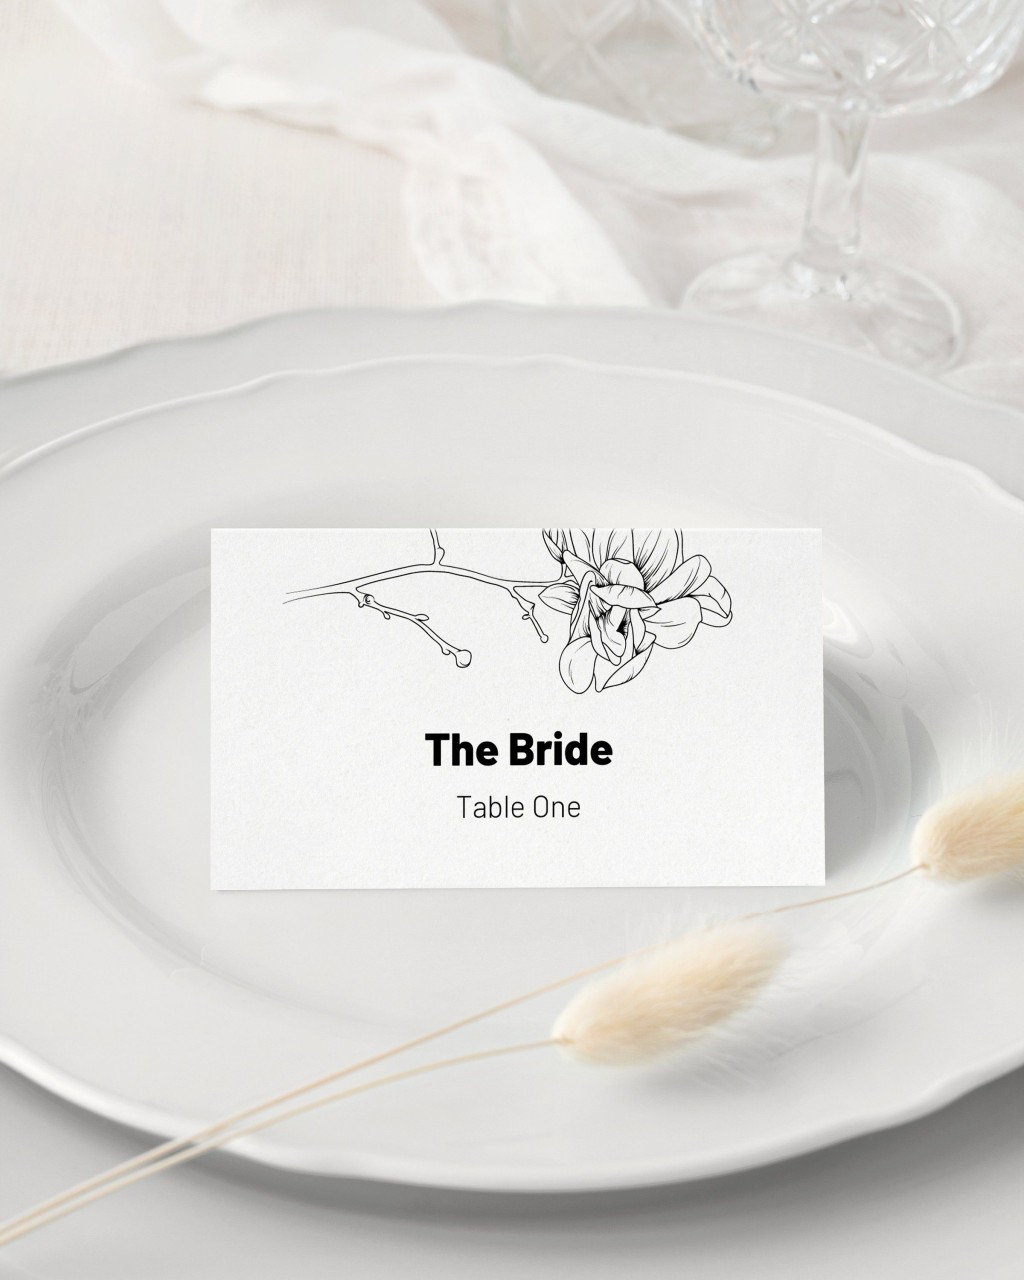 008 Unforgettable Wedding Name Card Template Picture  Free Download Design Sticker FormatLarge